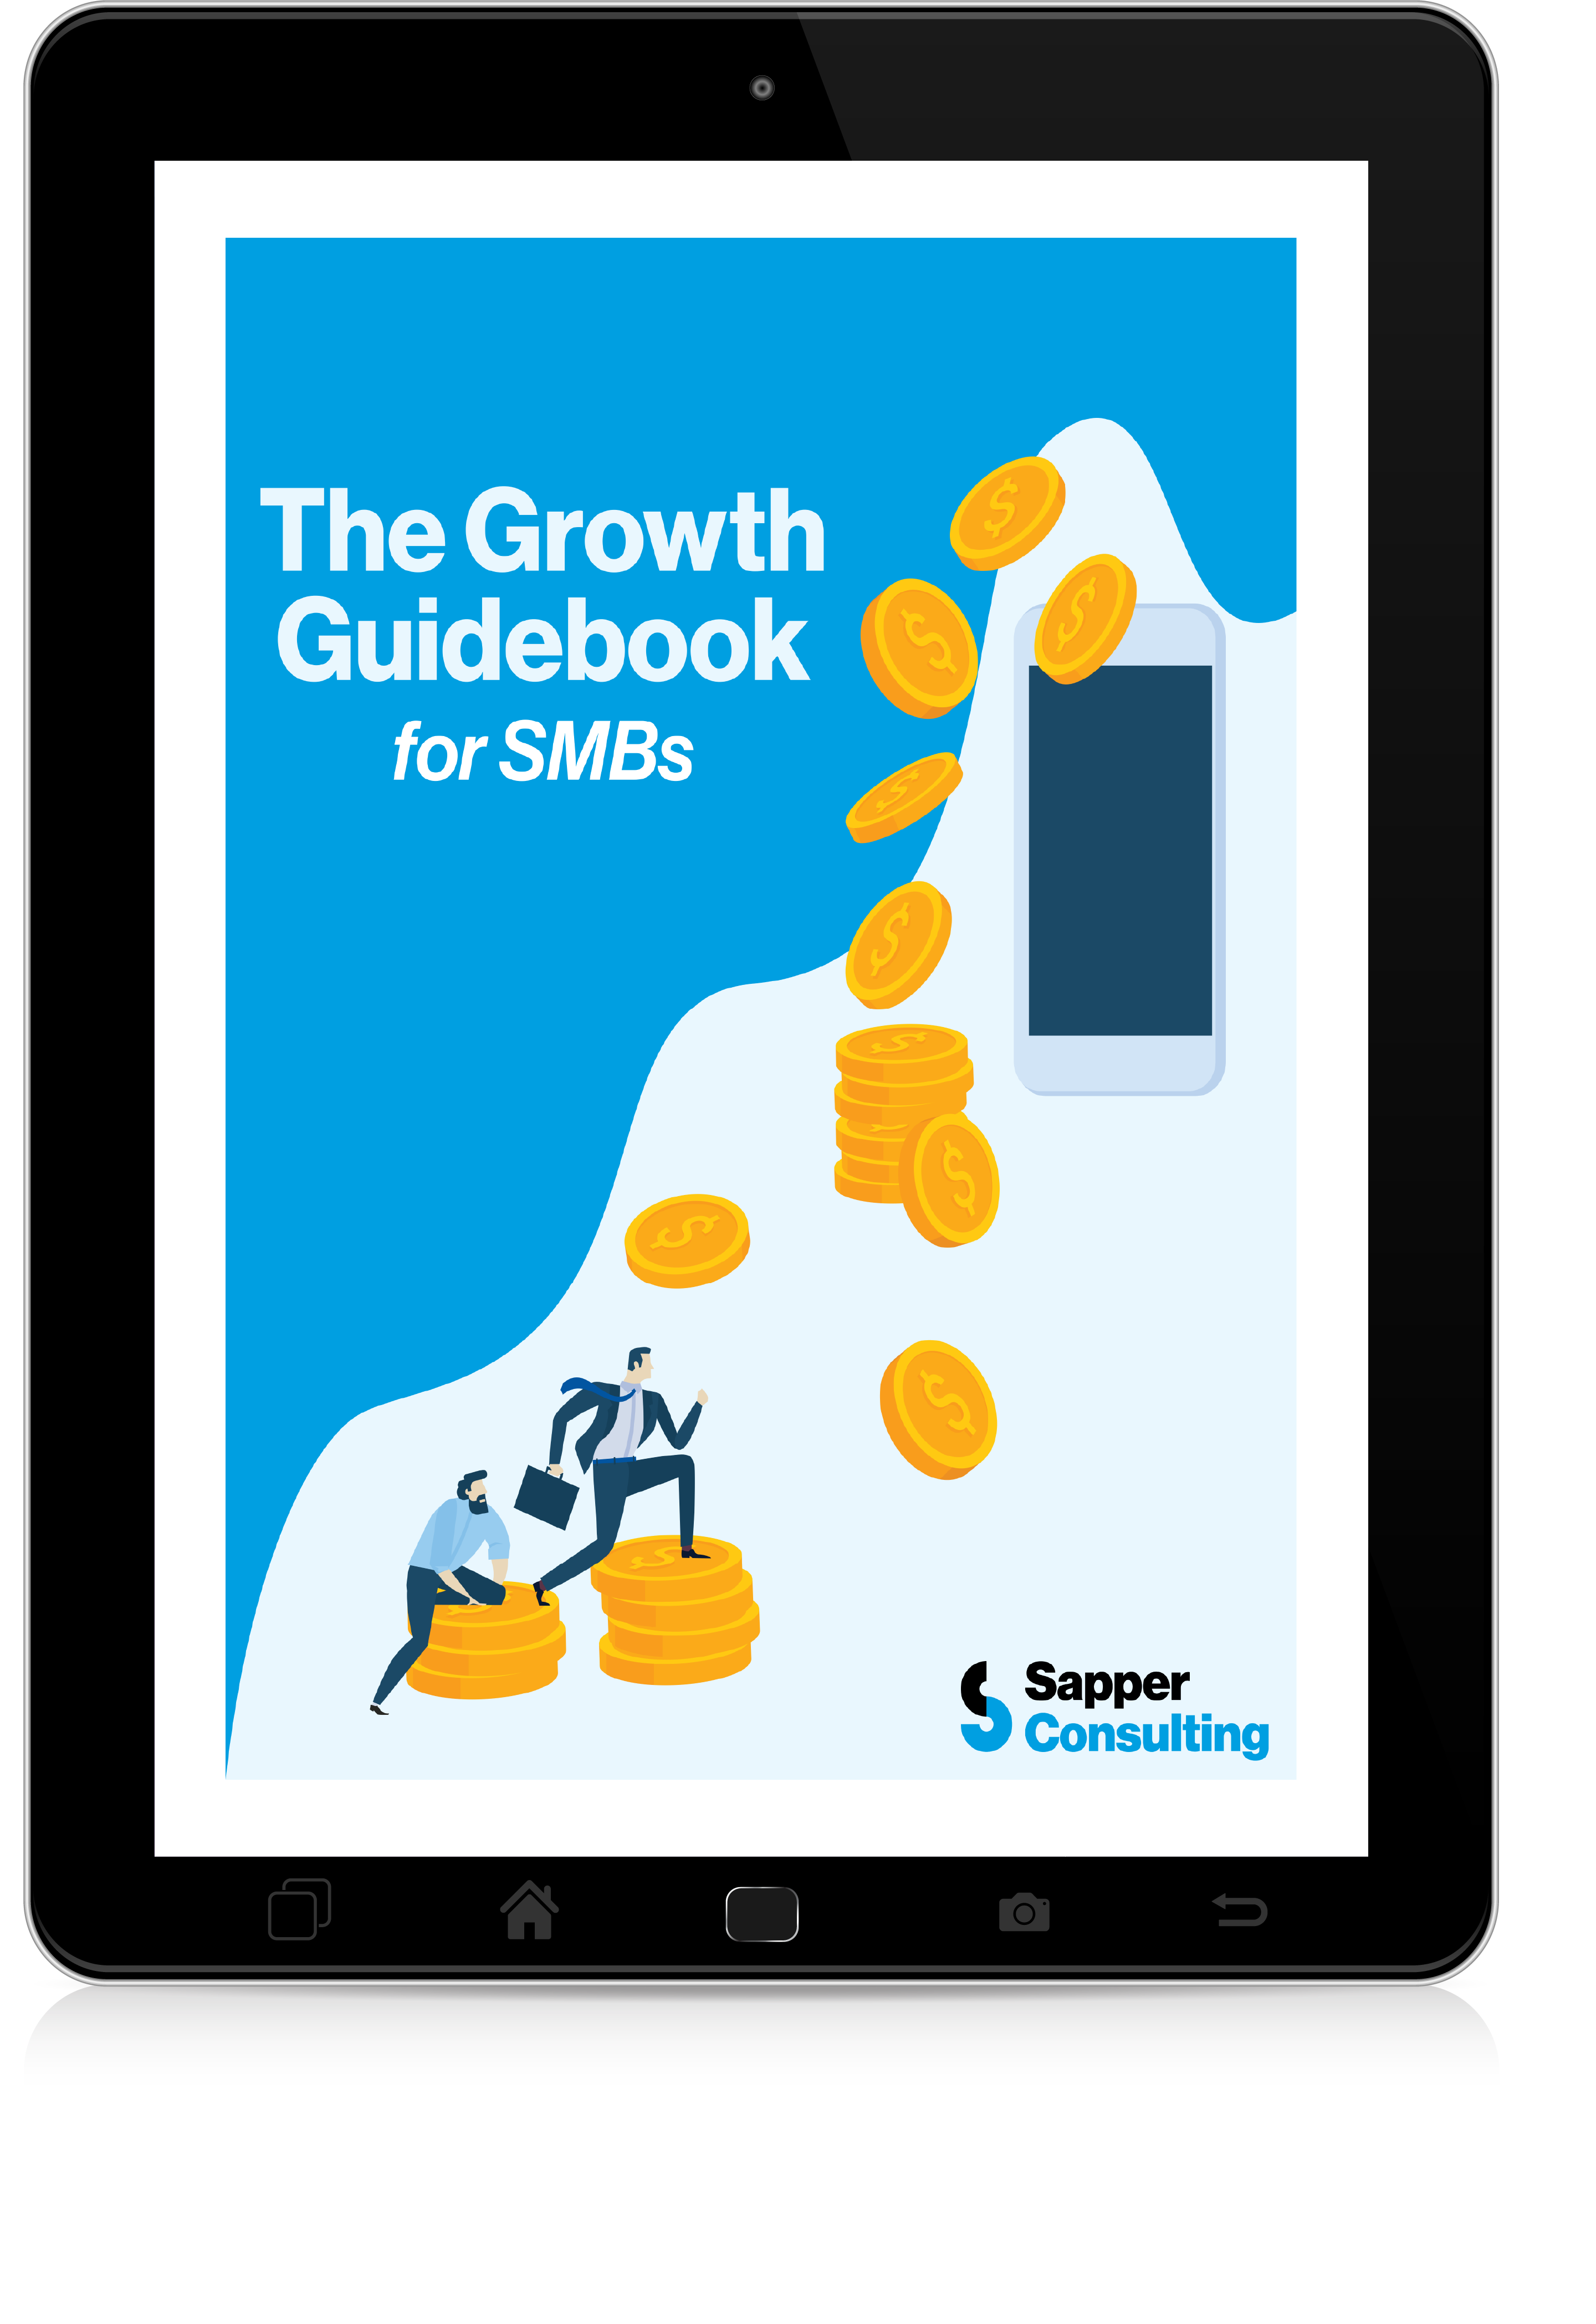 The Growth Guidebook for SMBs_iPad thumbnail